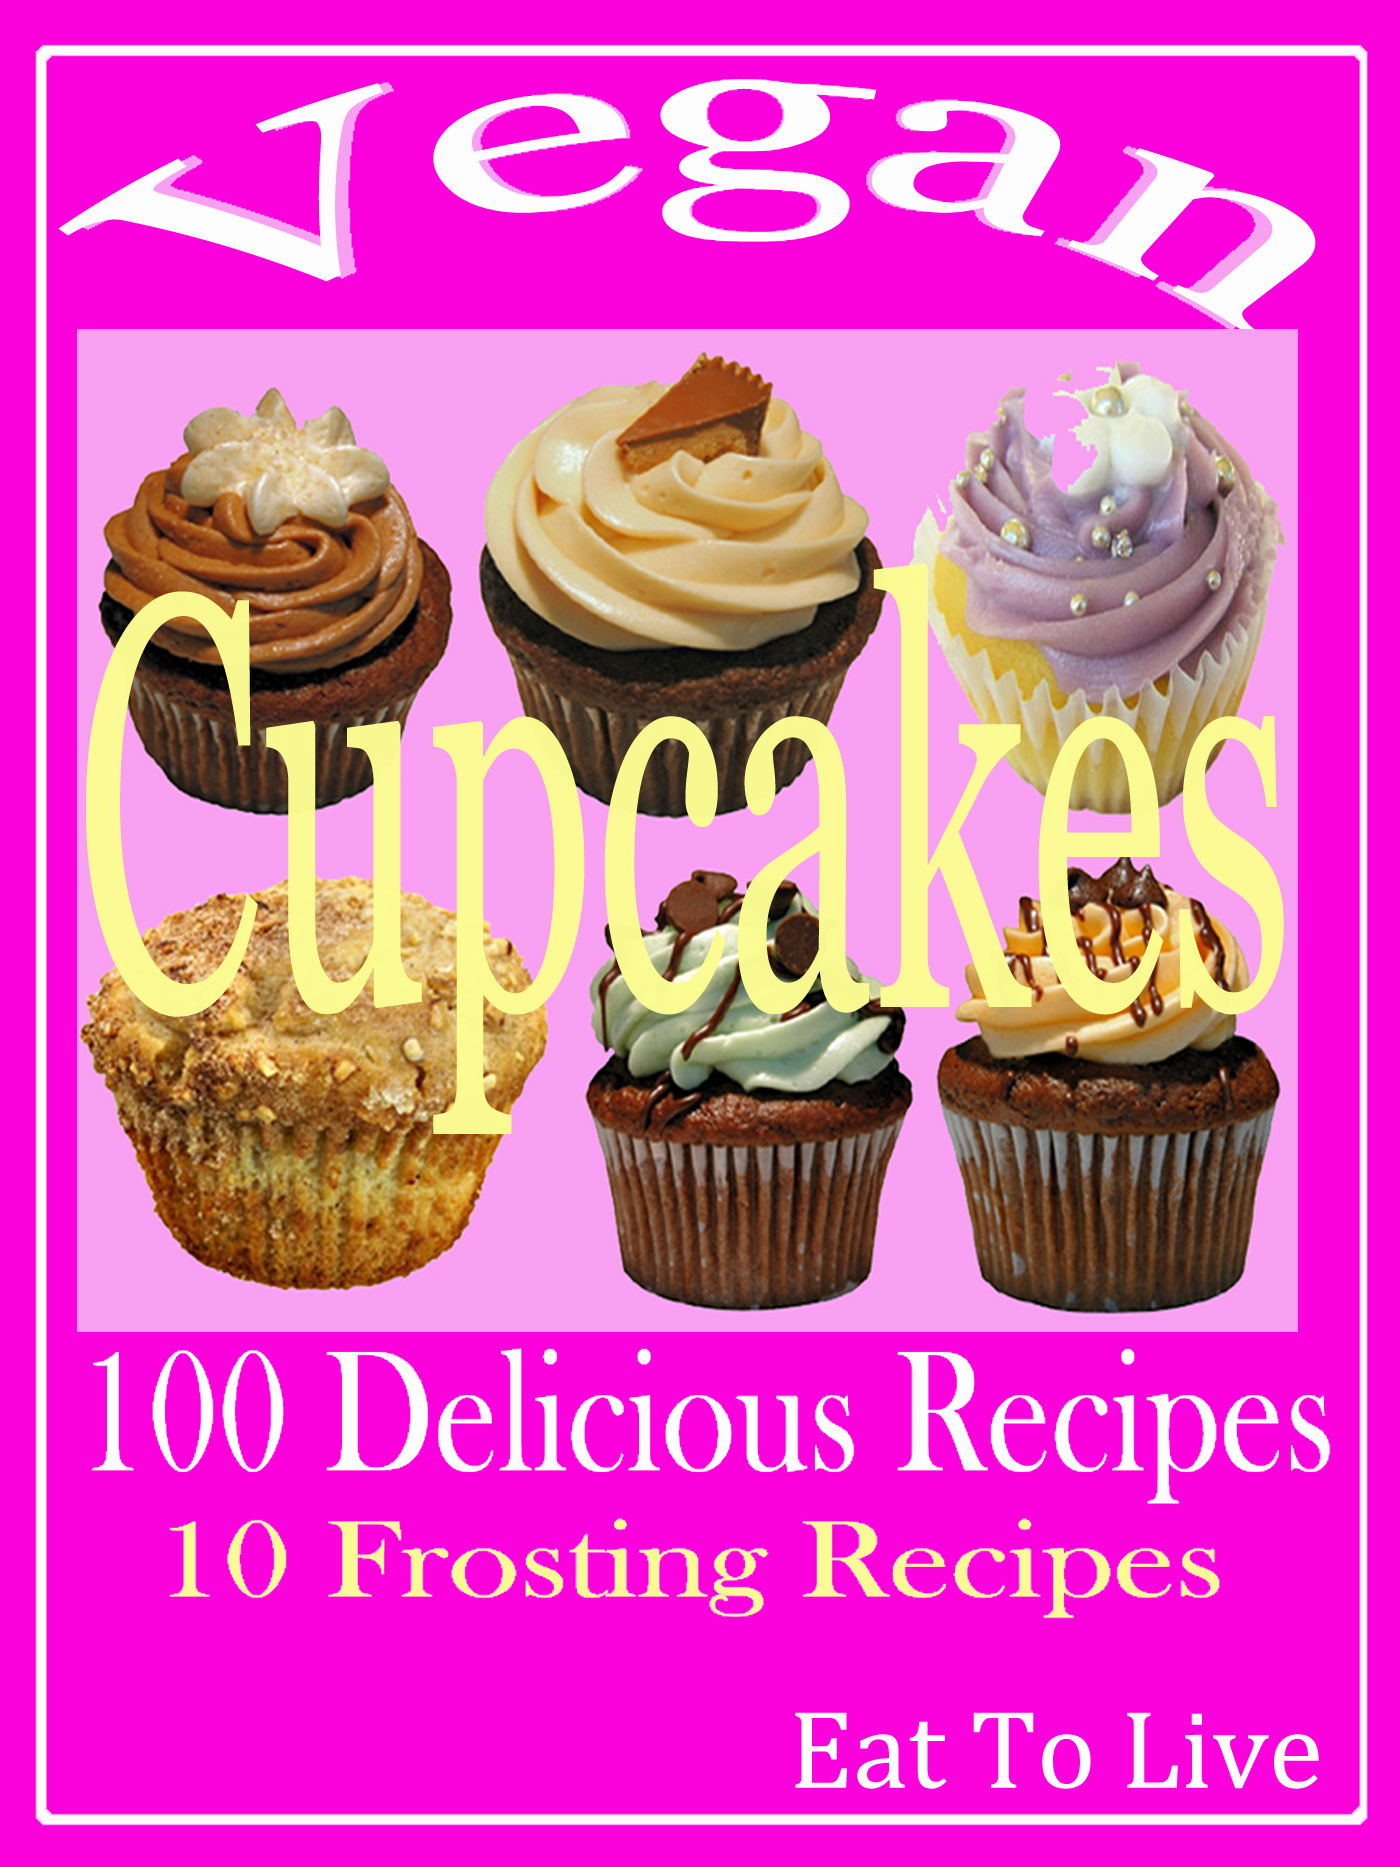 Vegan Cupcakes: 100 Delicious Recipes: 10 Frosting Recipes